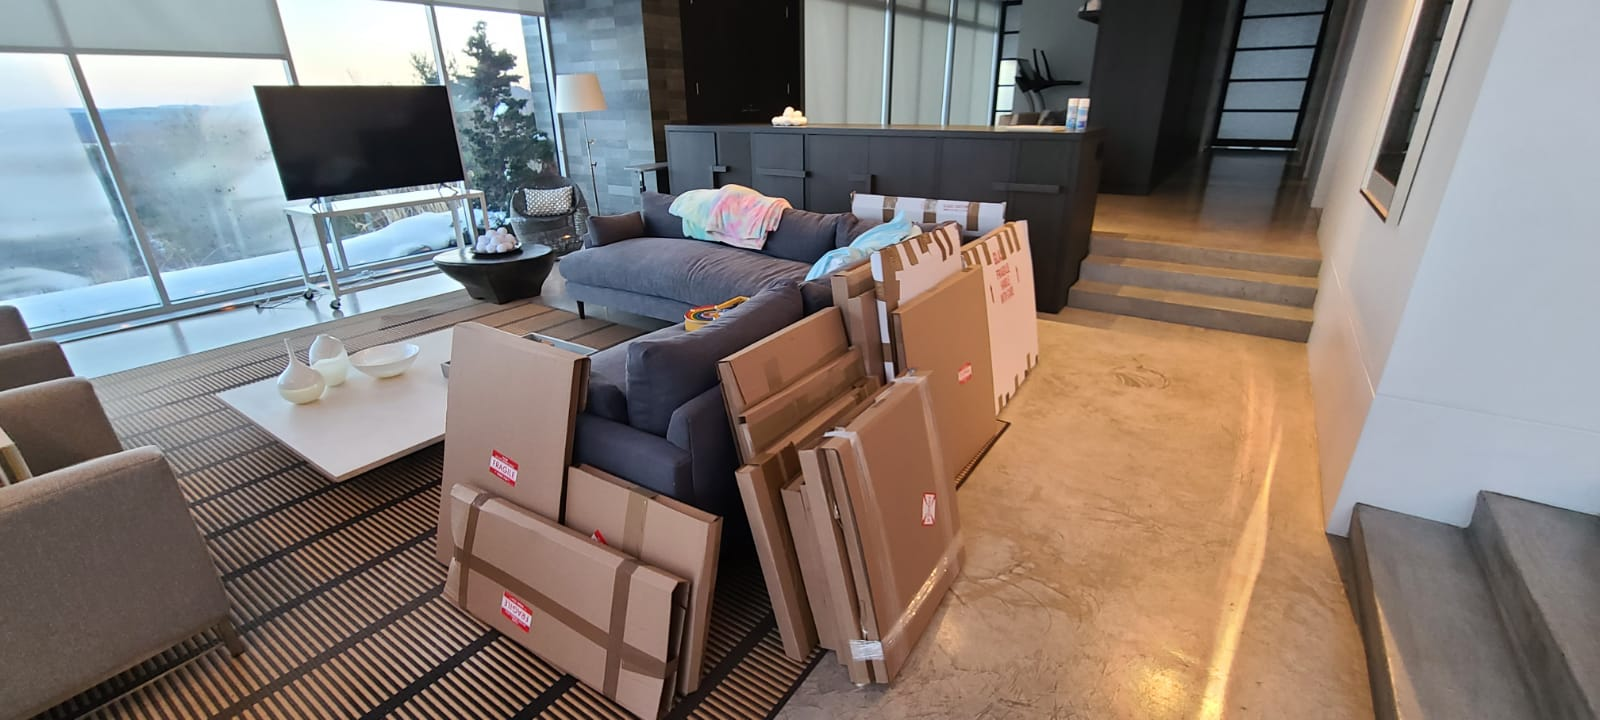 Luxury Home Moving Services in the United States